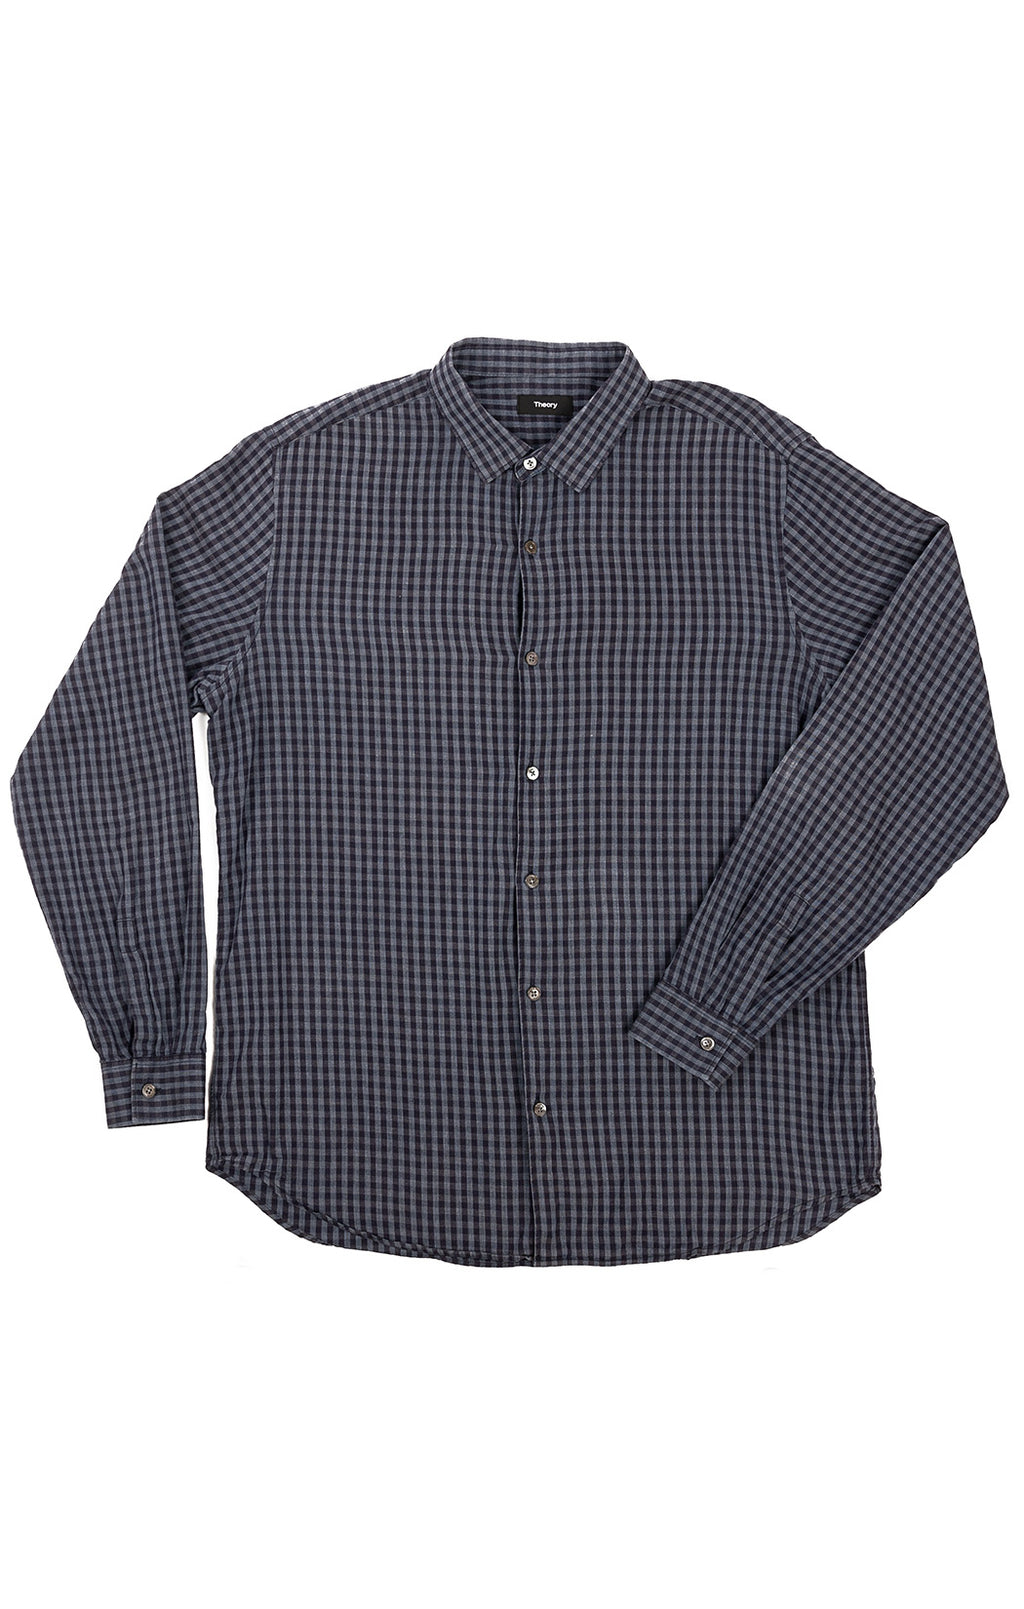 Blue check button down long sleeve shirt